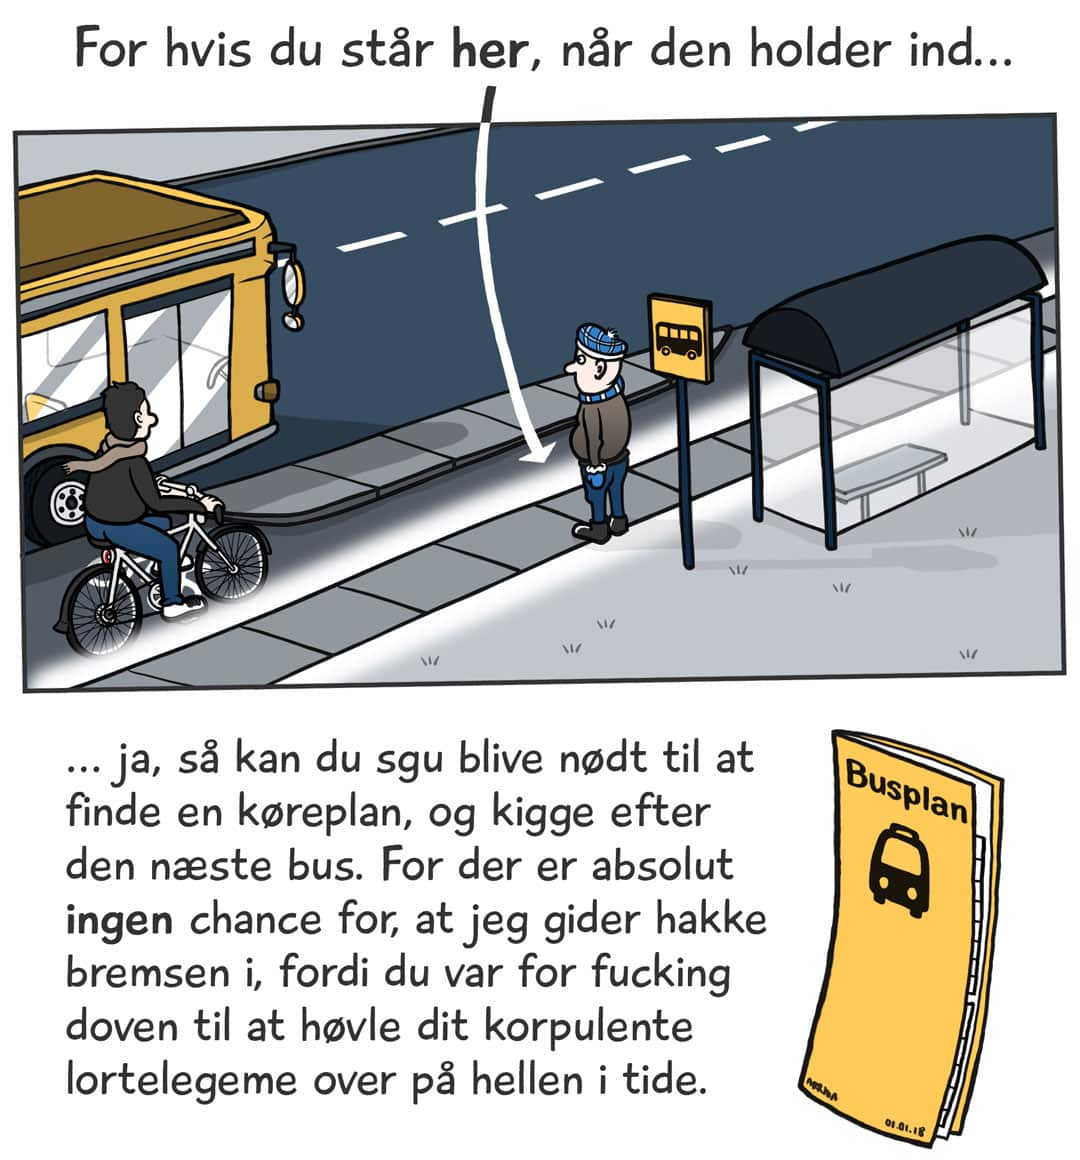 For hvis du står her, når den holder ind... ja, så kan du sgu blive nødt til at finde en køreplan, og kigge efter den næste bus. For der er absolut ingen chance for, at jeg gider hakke bremsen i, fordi du var for fucking doven til at høvle dit korpulente lortelegeme over på hellen i tide.